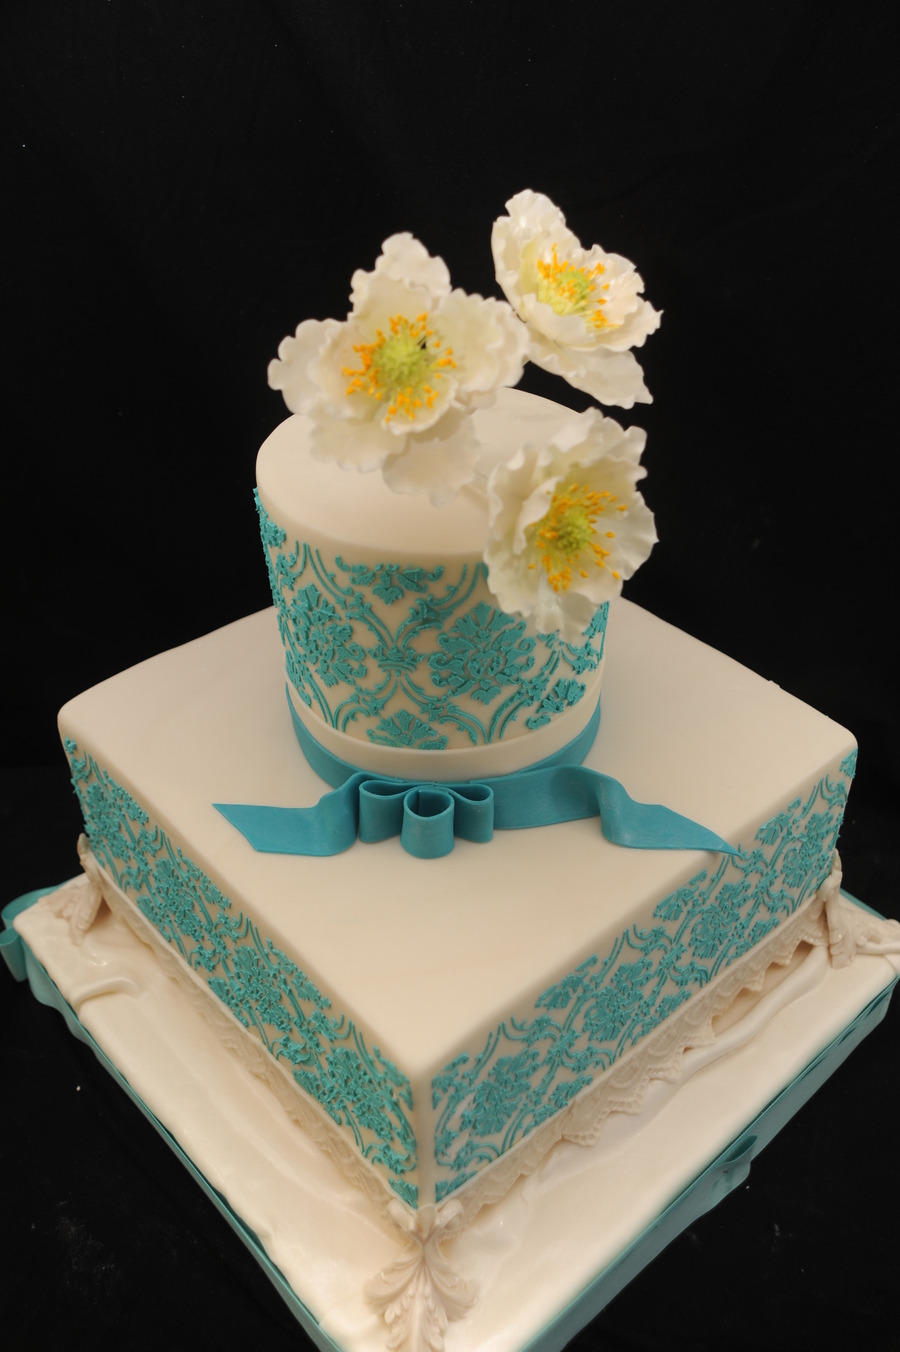 My Client Sent A Picture Of A Gorgeous Printed Damask Cake By By Ellen Baumwoll Bijouxdouxcom This Cake Is Inspired By That Picture I Di on Cake Central